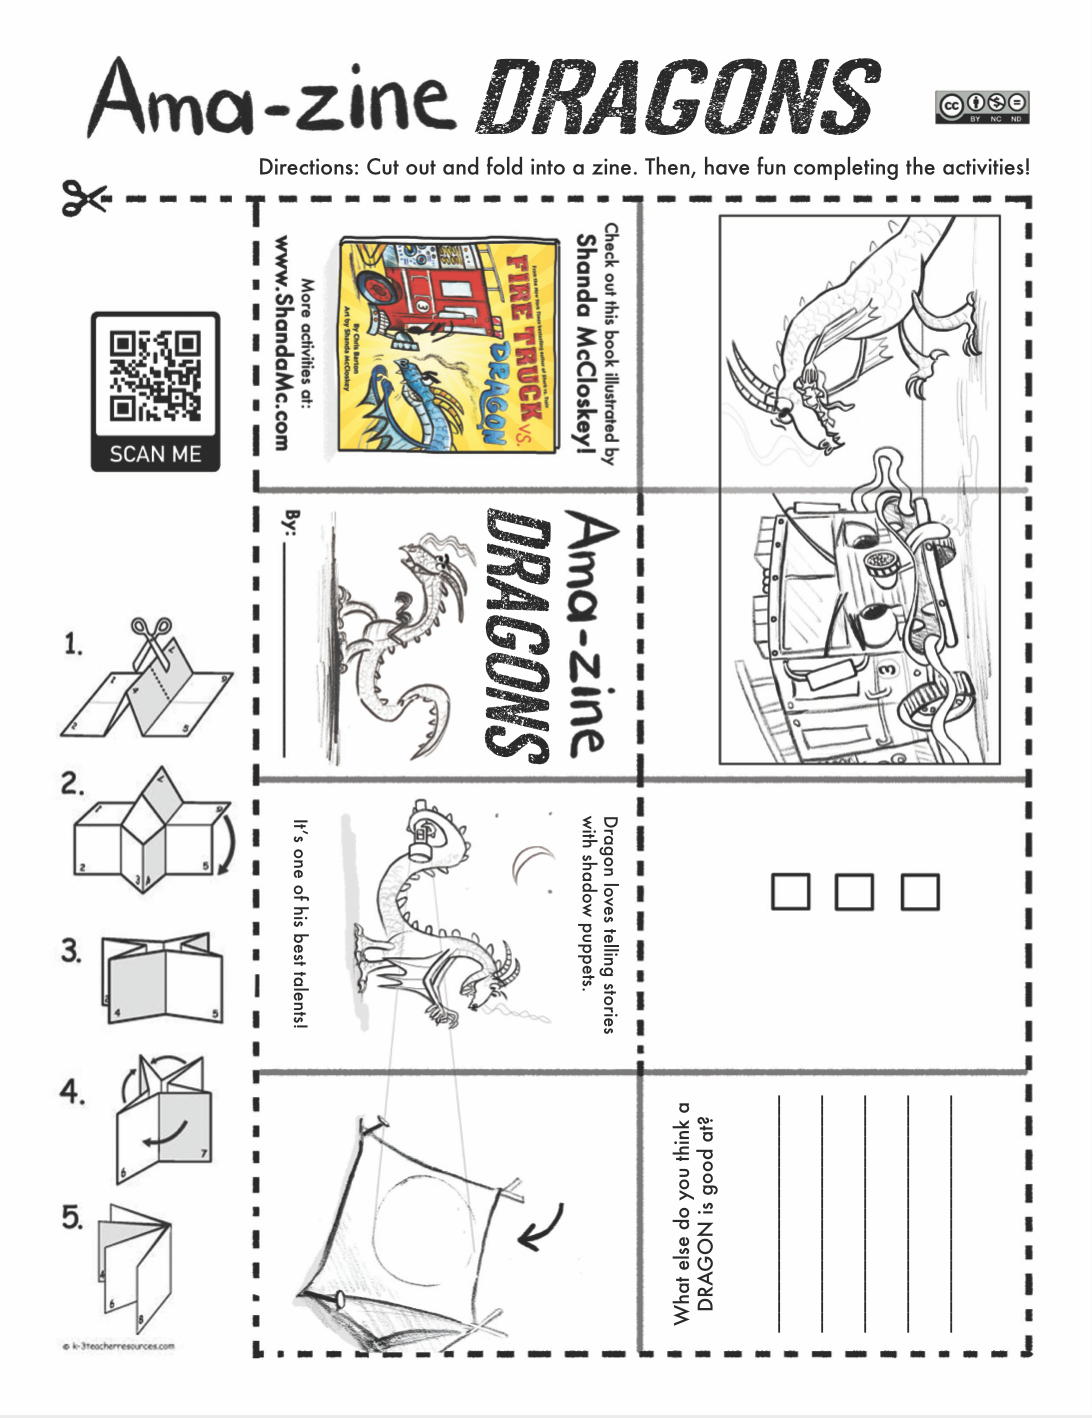 Amazing dragons zine activity inspired by the book, Fire Truck vs. Dragon, by Chris Barton and Shanda McCloskey